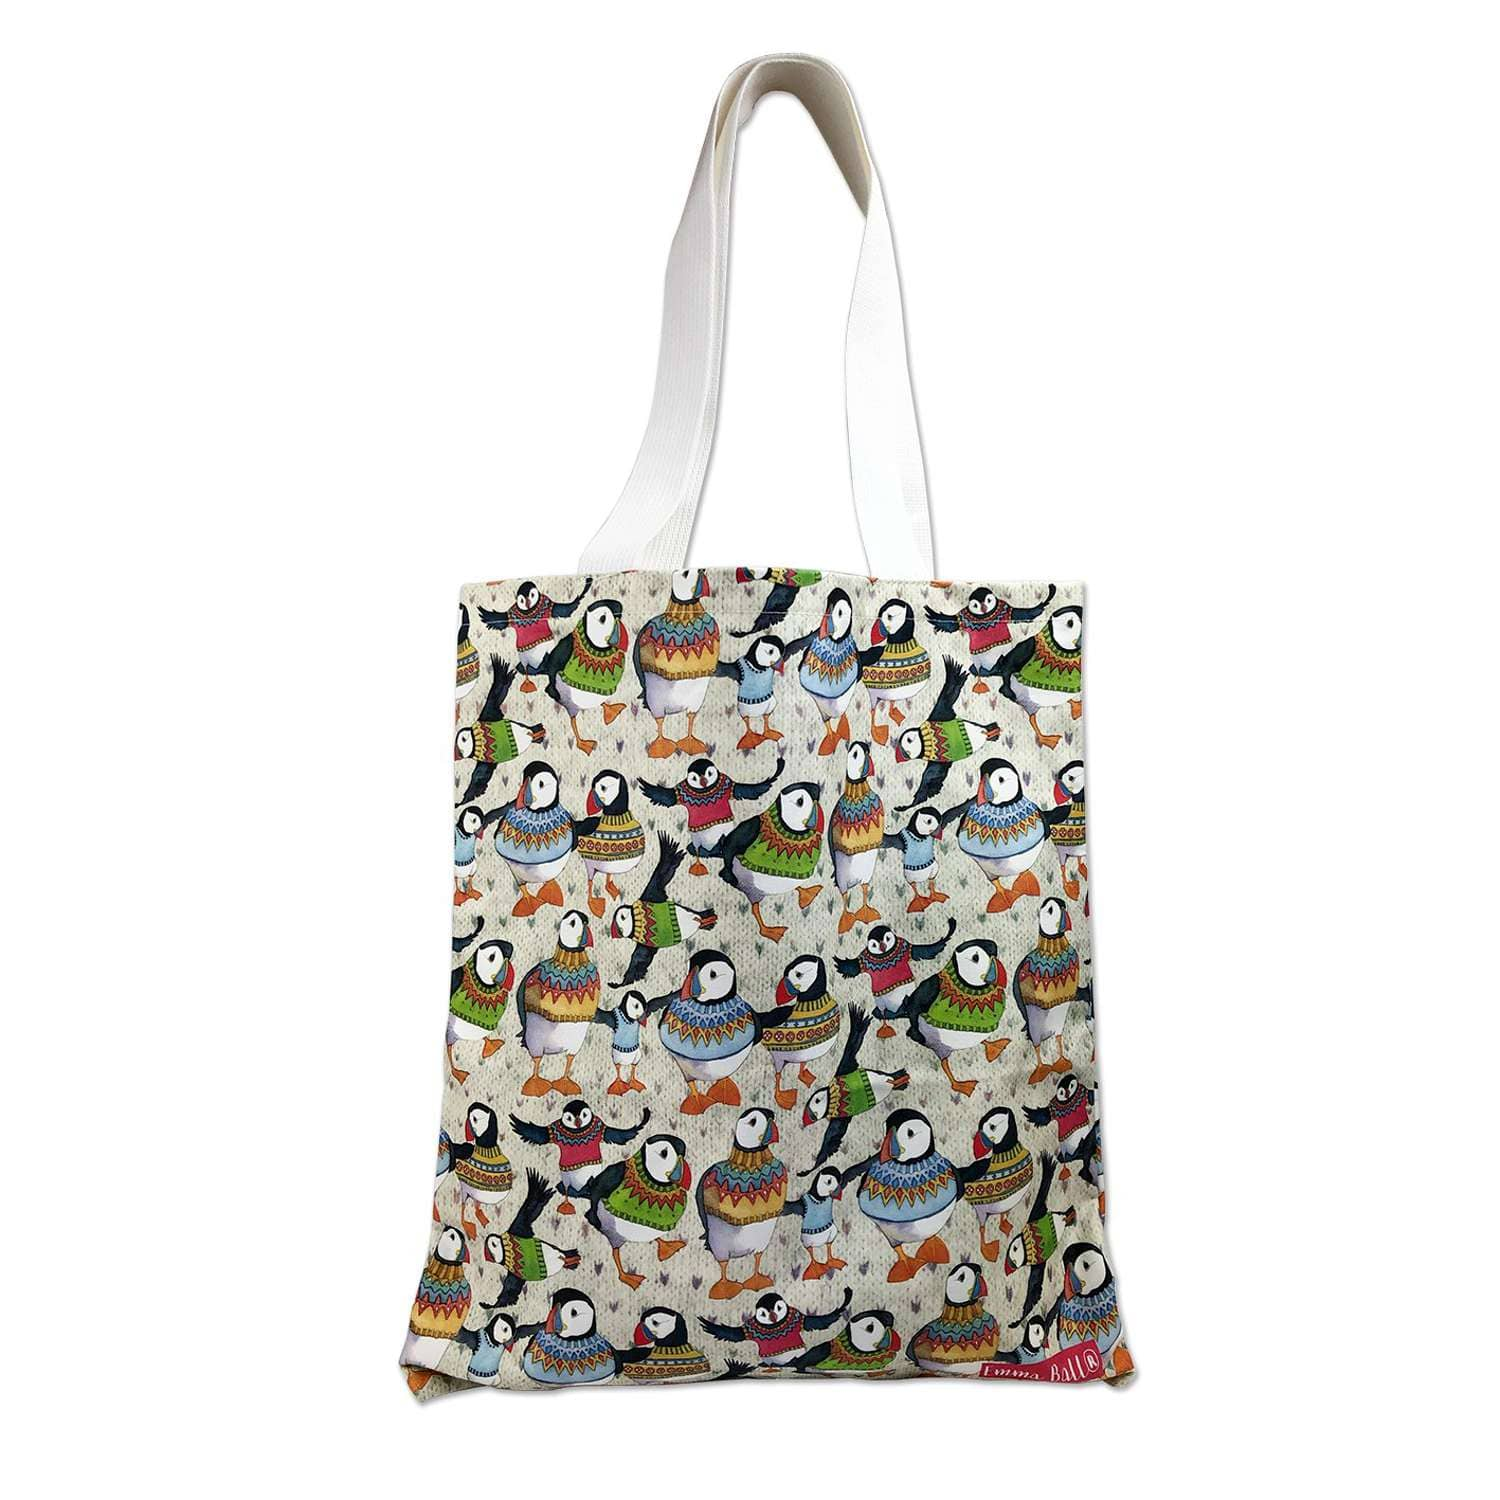 Emma Ball - Woolly Puffin Tote Bag | Yarn Worx